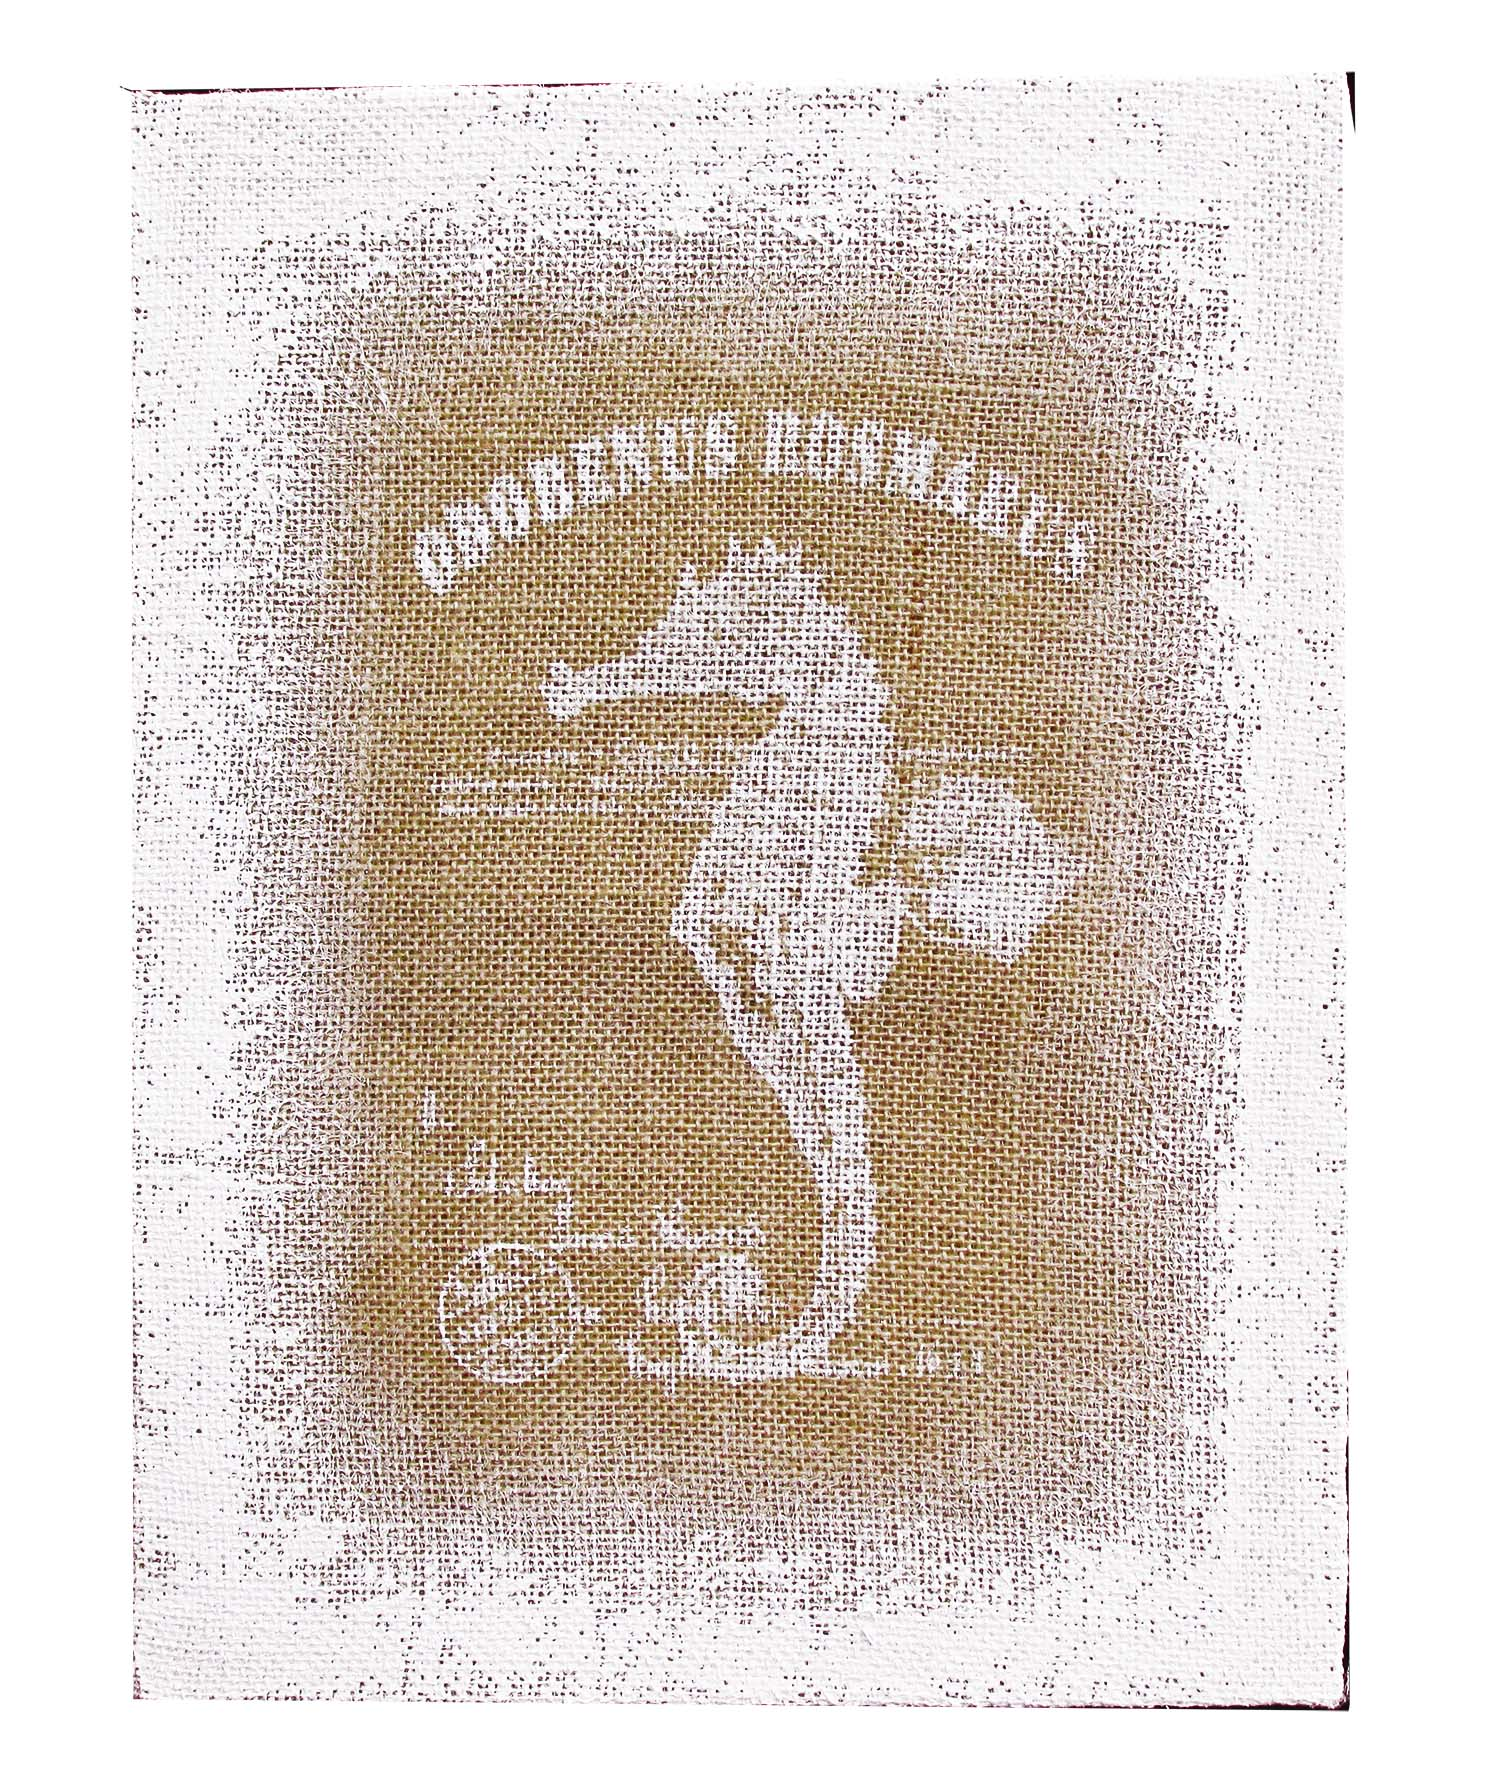 C/O-CANVAS/BURLAP SEAHORSE * UOM: PC * Minimum Order:4